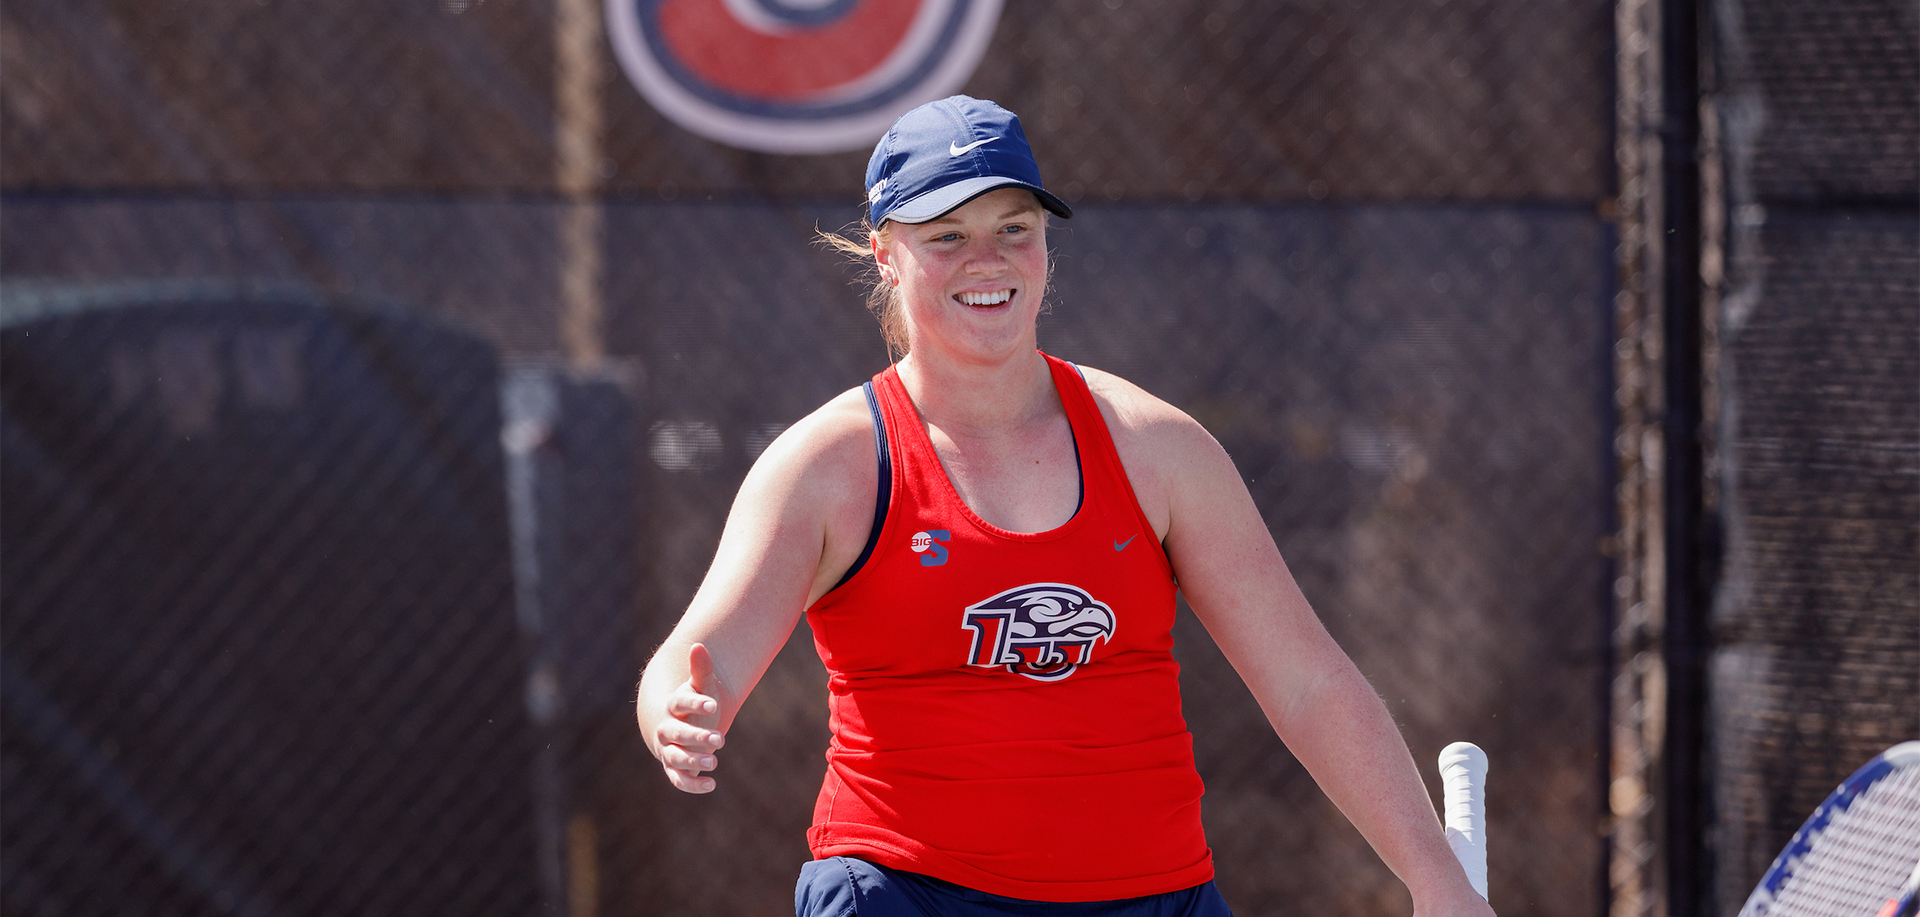 The Liberty women's tennis team will begin its spring campaign vs. Big South opponent Longwood, Wednesday in Lynchburg.